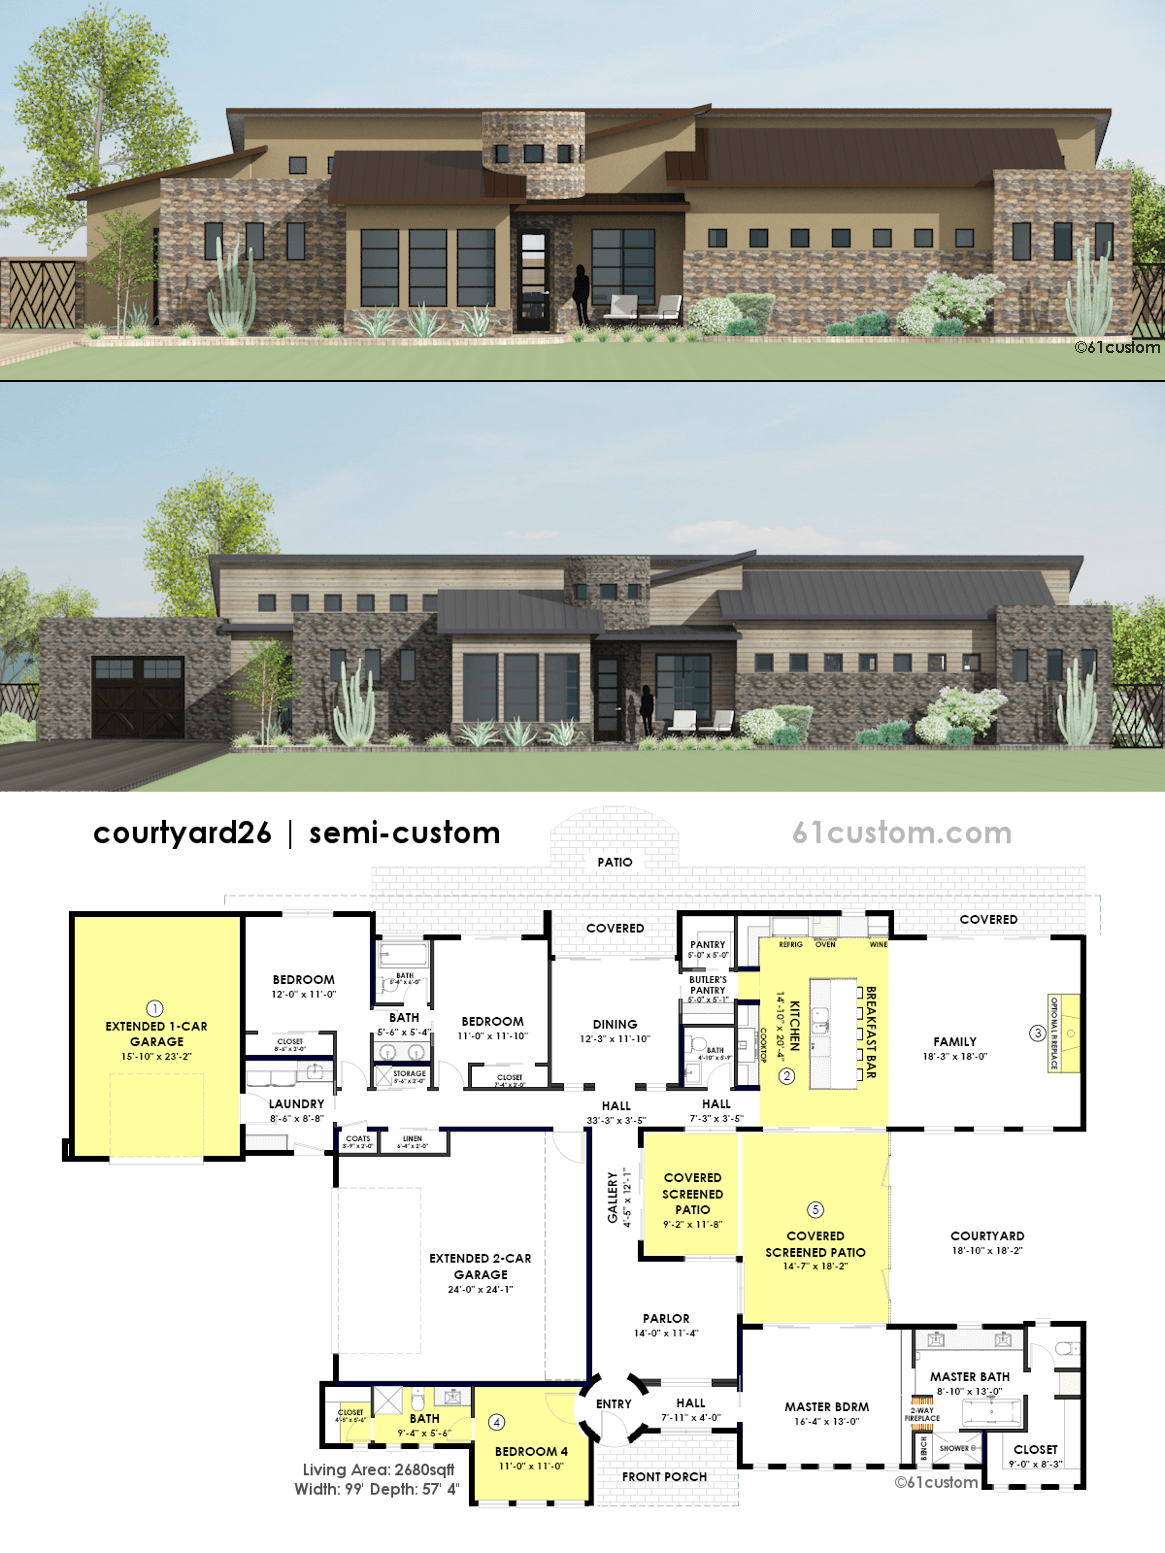 Contemporary Side Courtyard House Plan | Contemporary house plans ...